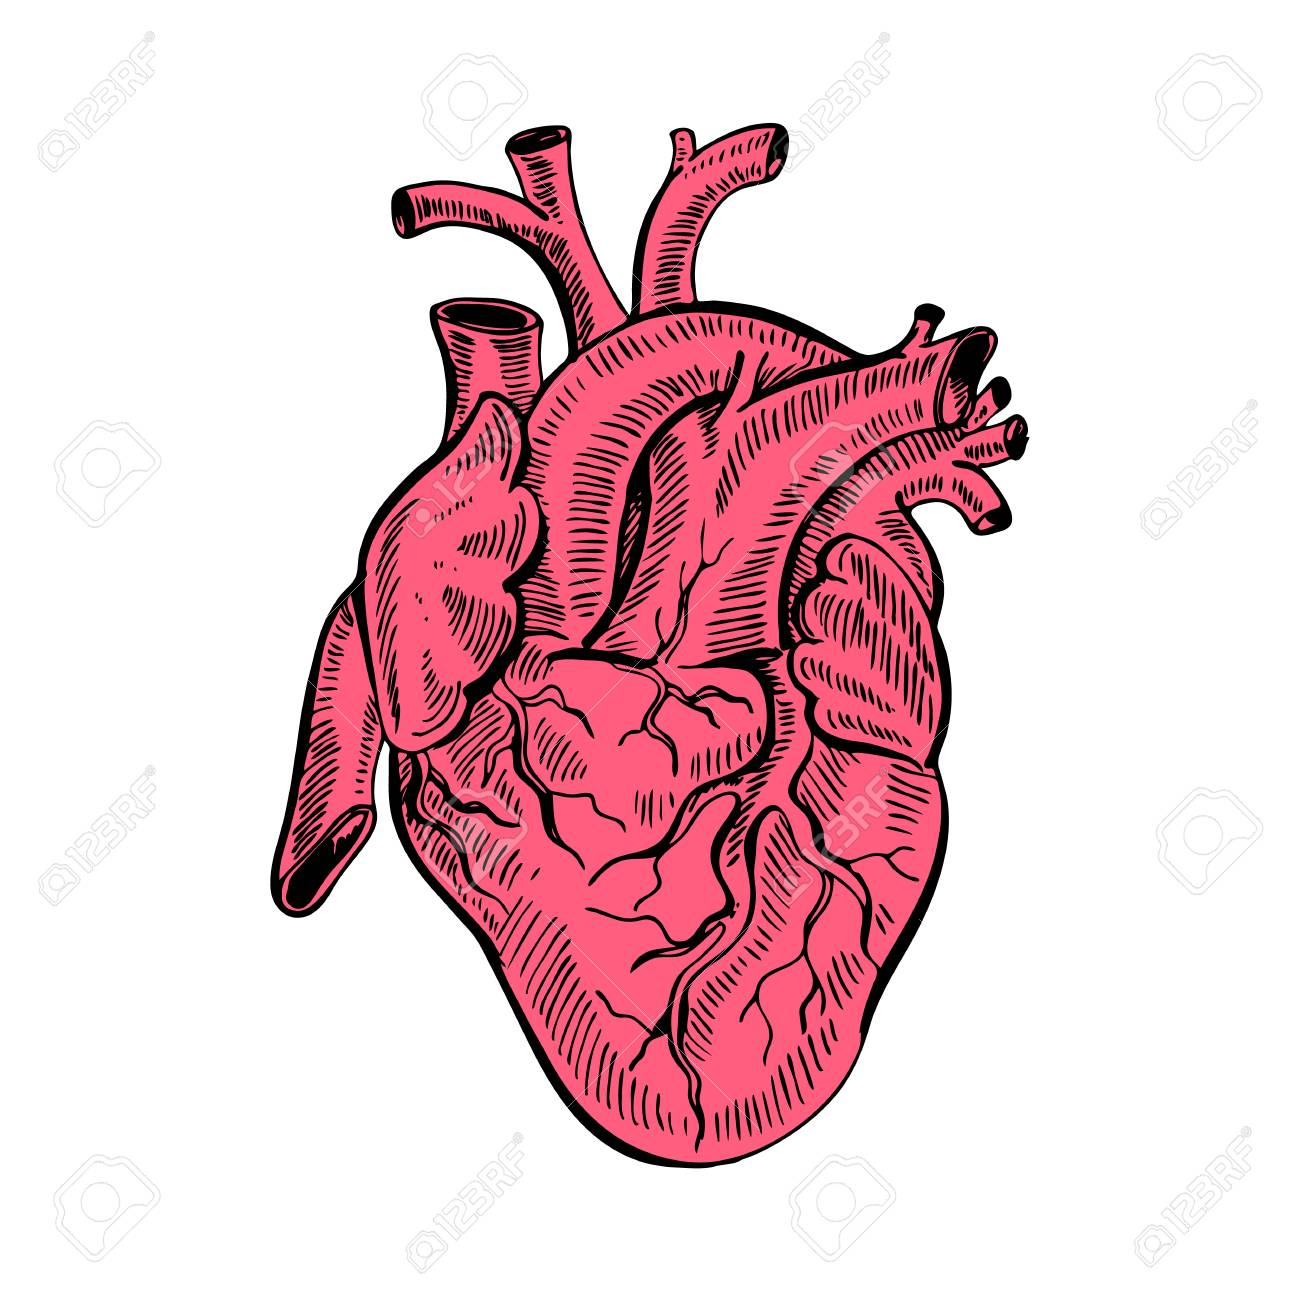 1300x1300 Hand Drawing Sketch Anatomical Heart.cartoon Style Vector